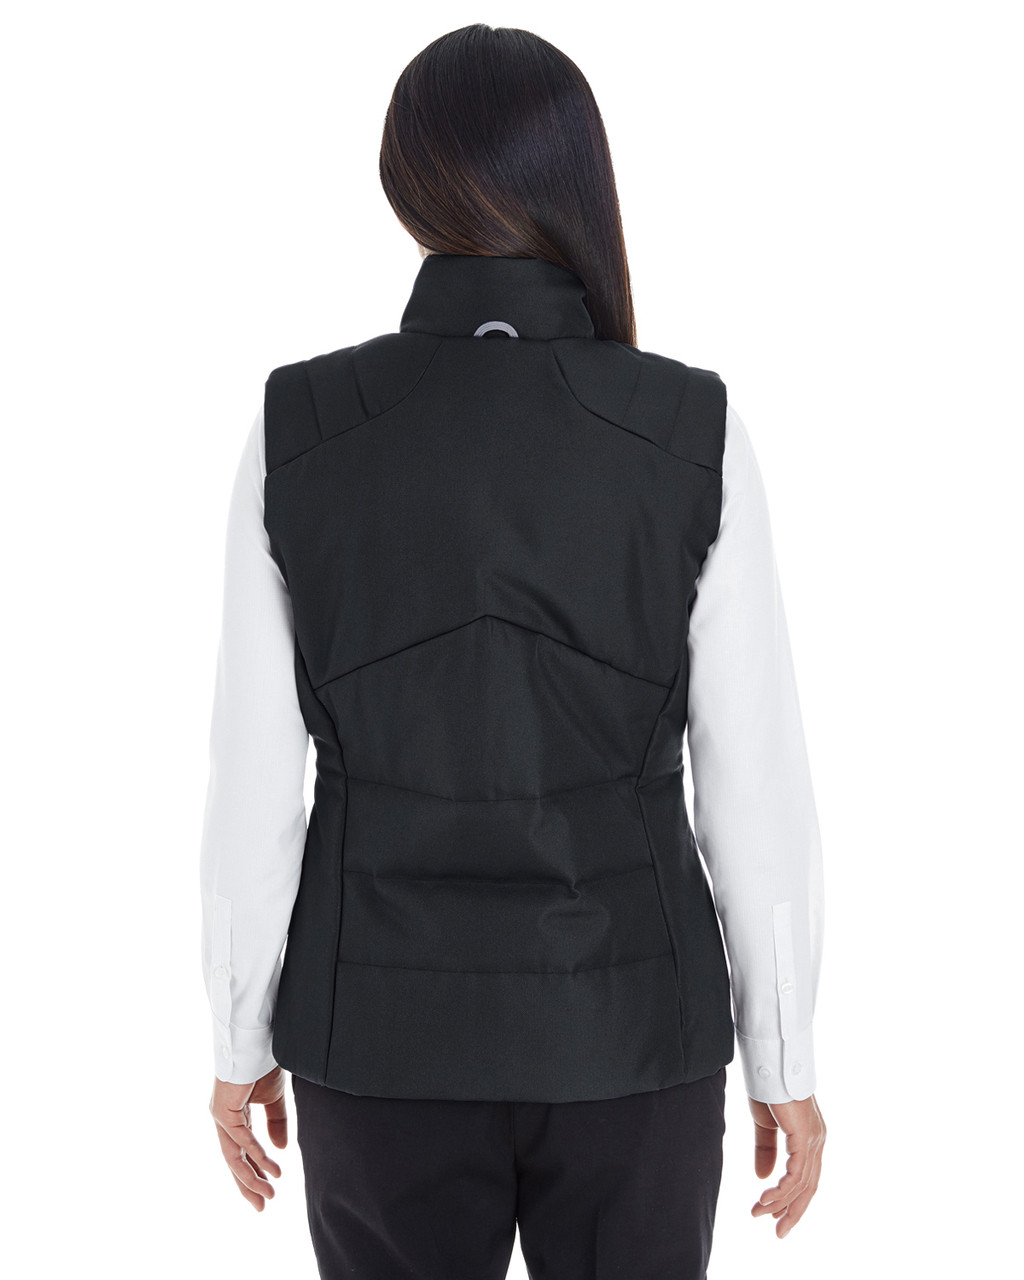 Black/Graphite - BACK - NE702W Ash City - North End Ladies' Engage Interactive Insulated Vest Blankclothing.ca